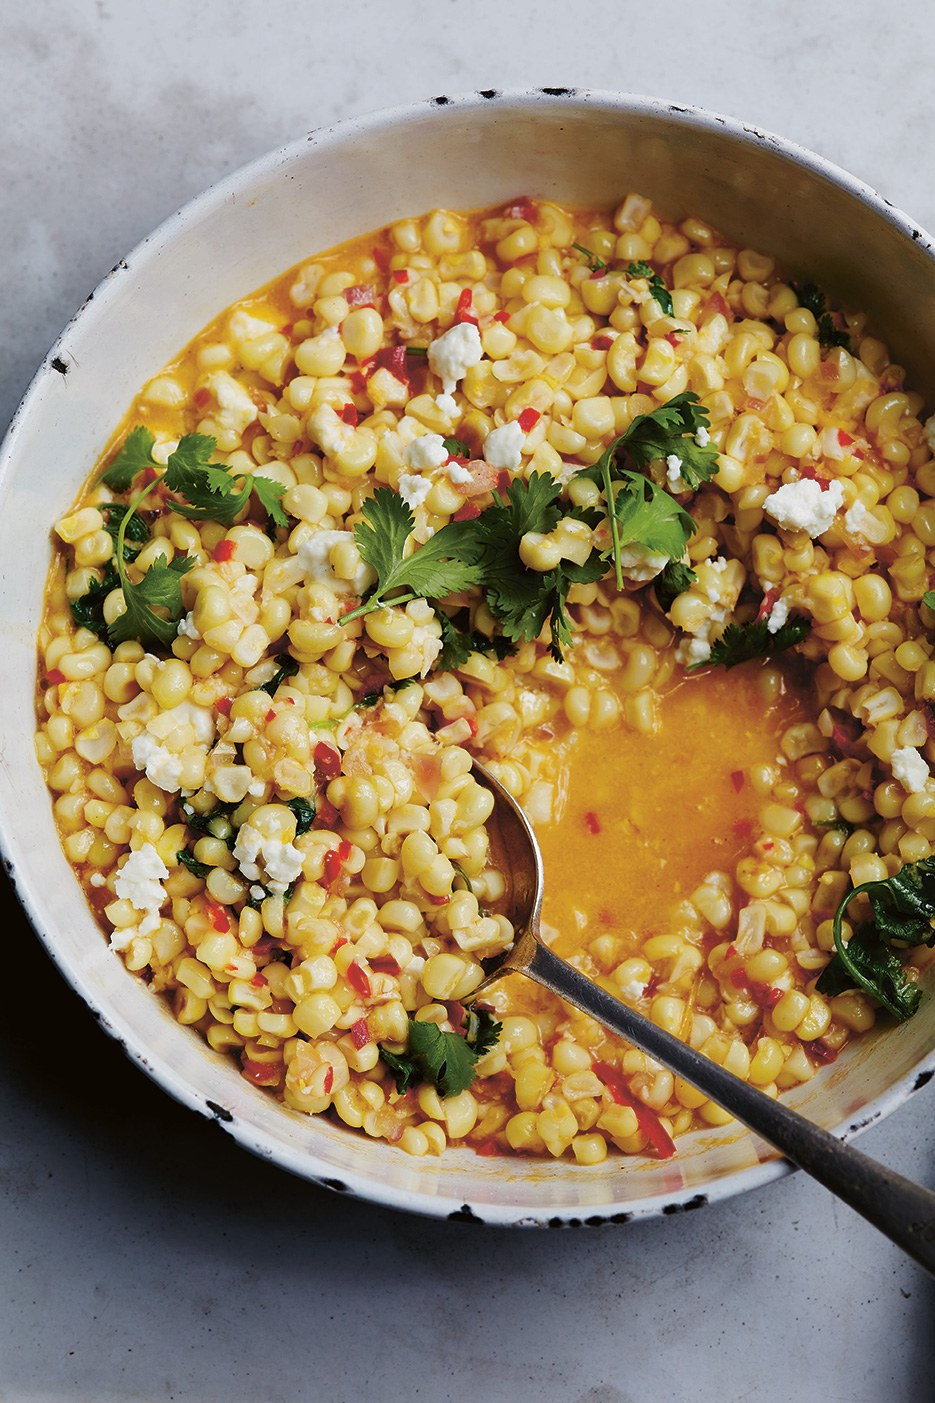 Recipe: Braised Sweet Corn with Chile, Cilantro, Feta and Lime